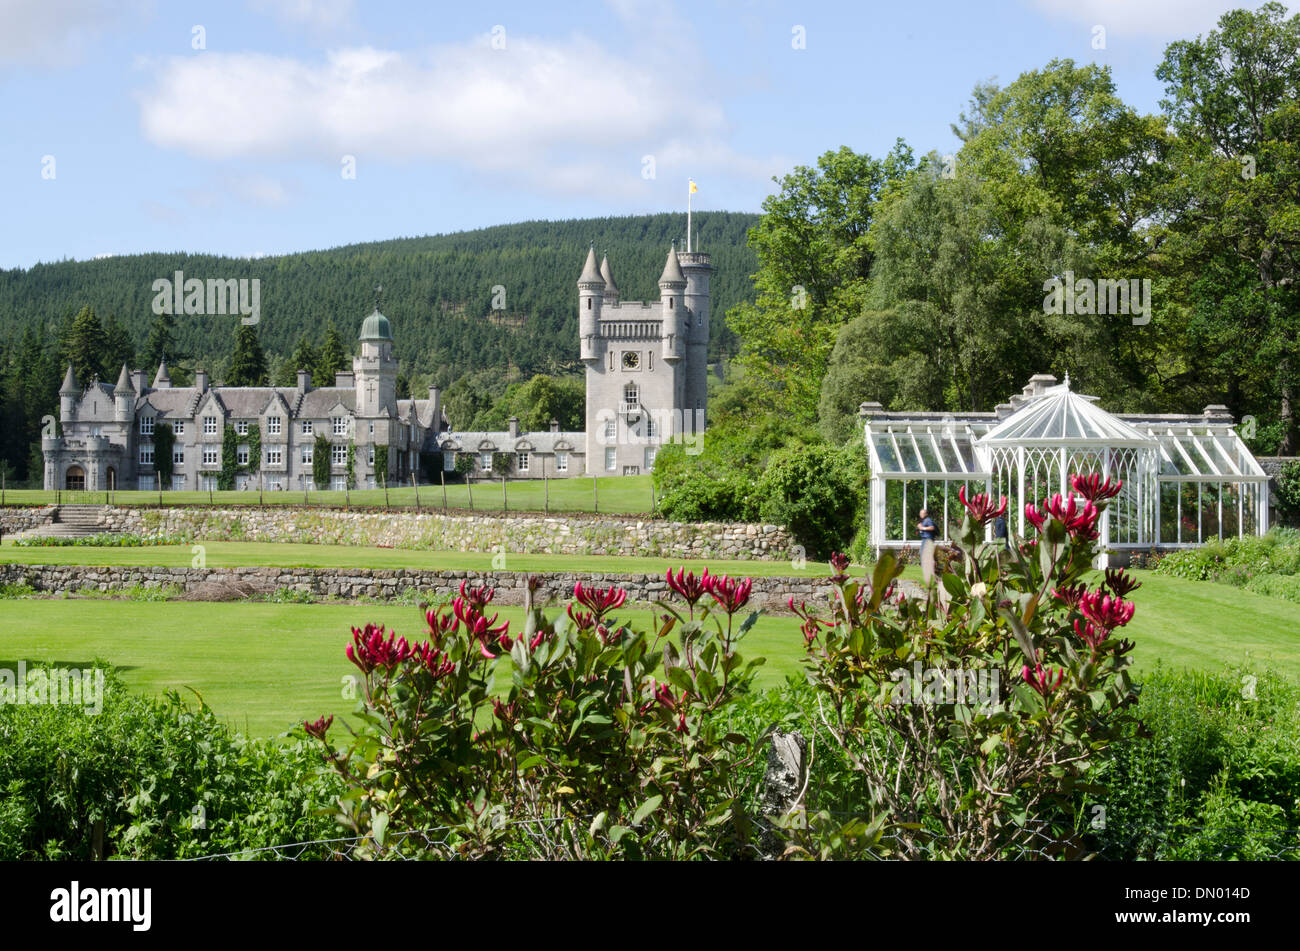 balmoral castle royal deeside with garden & conservatory - Stock Image